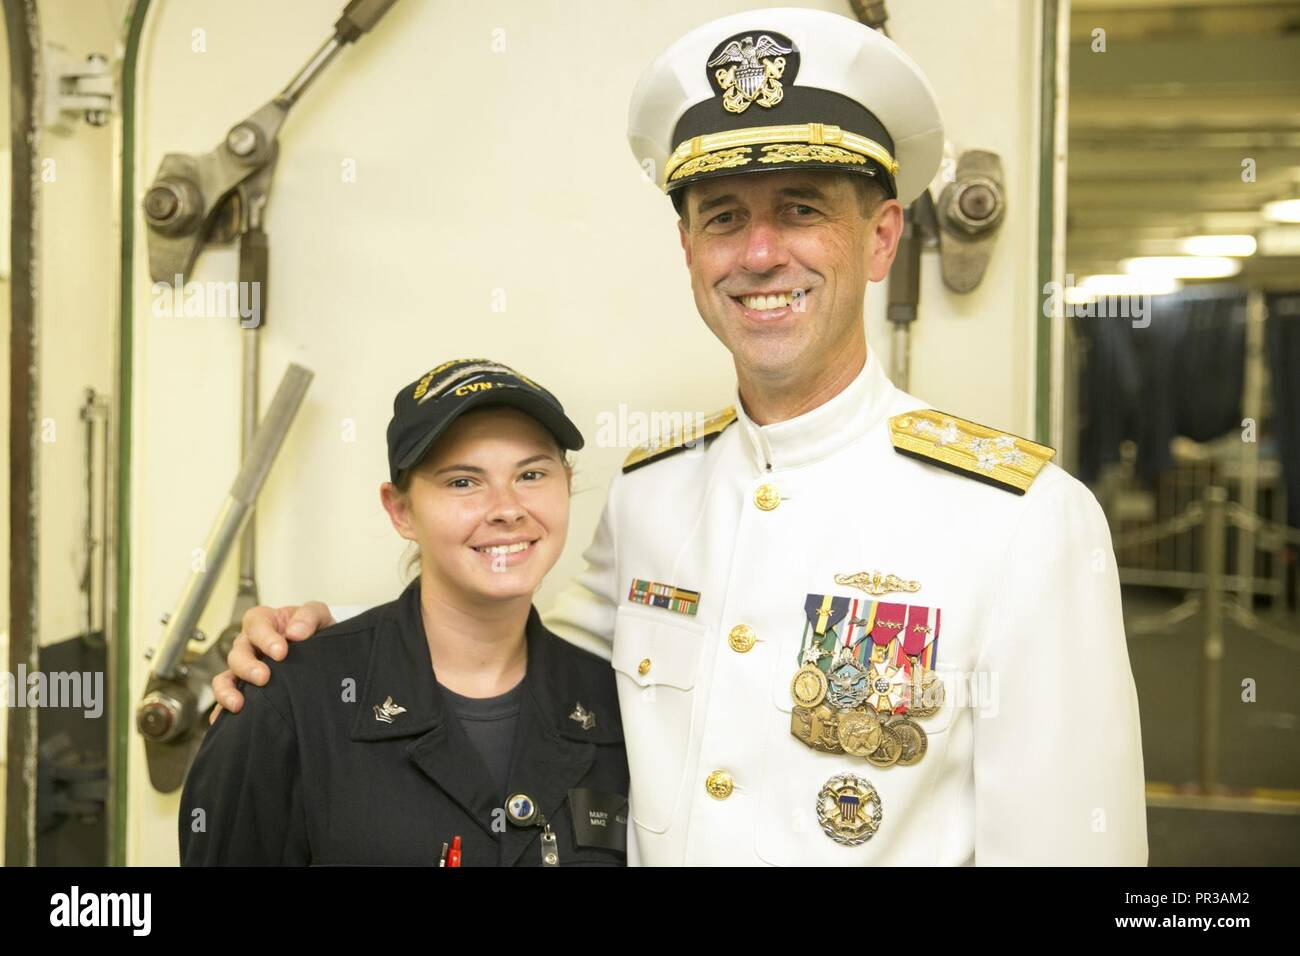 Va. (July 22, 2017) – Chief of Naval Operations Adm. John Richardson and Machinist Mate 2nd Class Mary Allinder, assigned to USS Gerald R. Ford (CVN 78), pose for a photo during Ford's commissioning ceremony at Naval Station Norfolk. Ford is the lead ship of the Ford-class aircraft carriers, and the first new U.S. aircraft carrier design in 40 years. - Stock Image